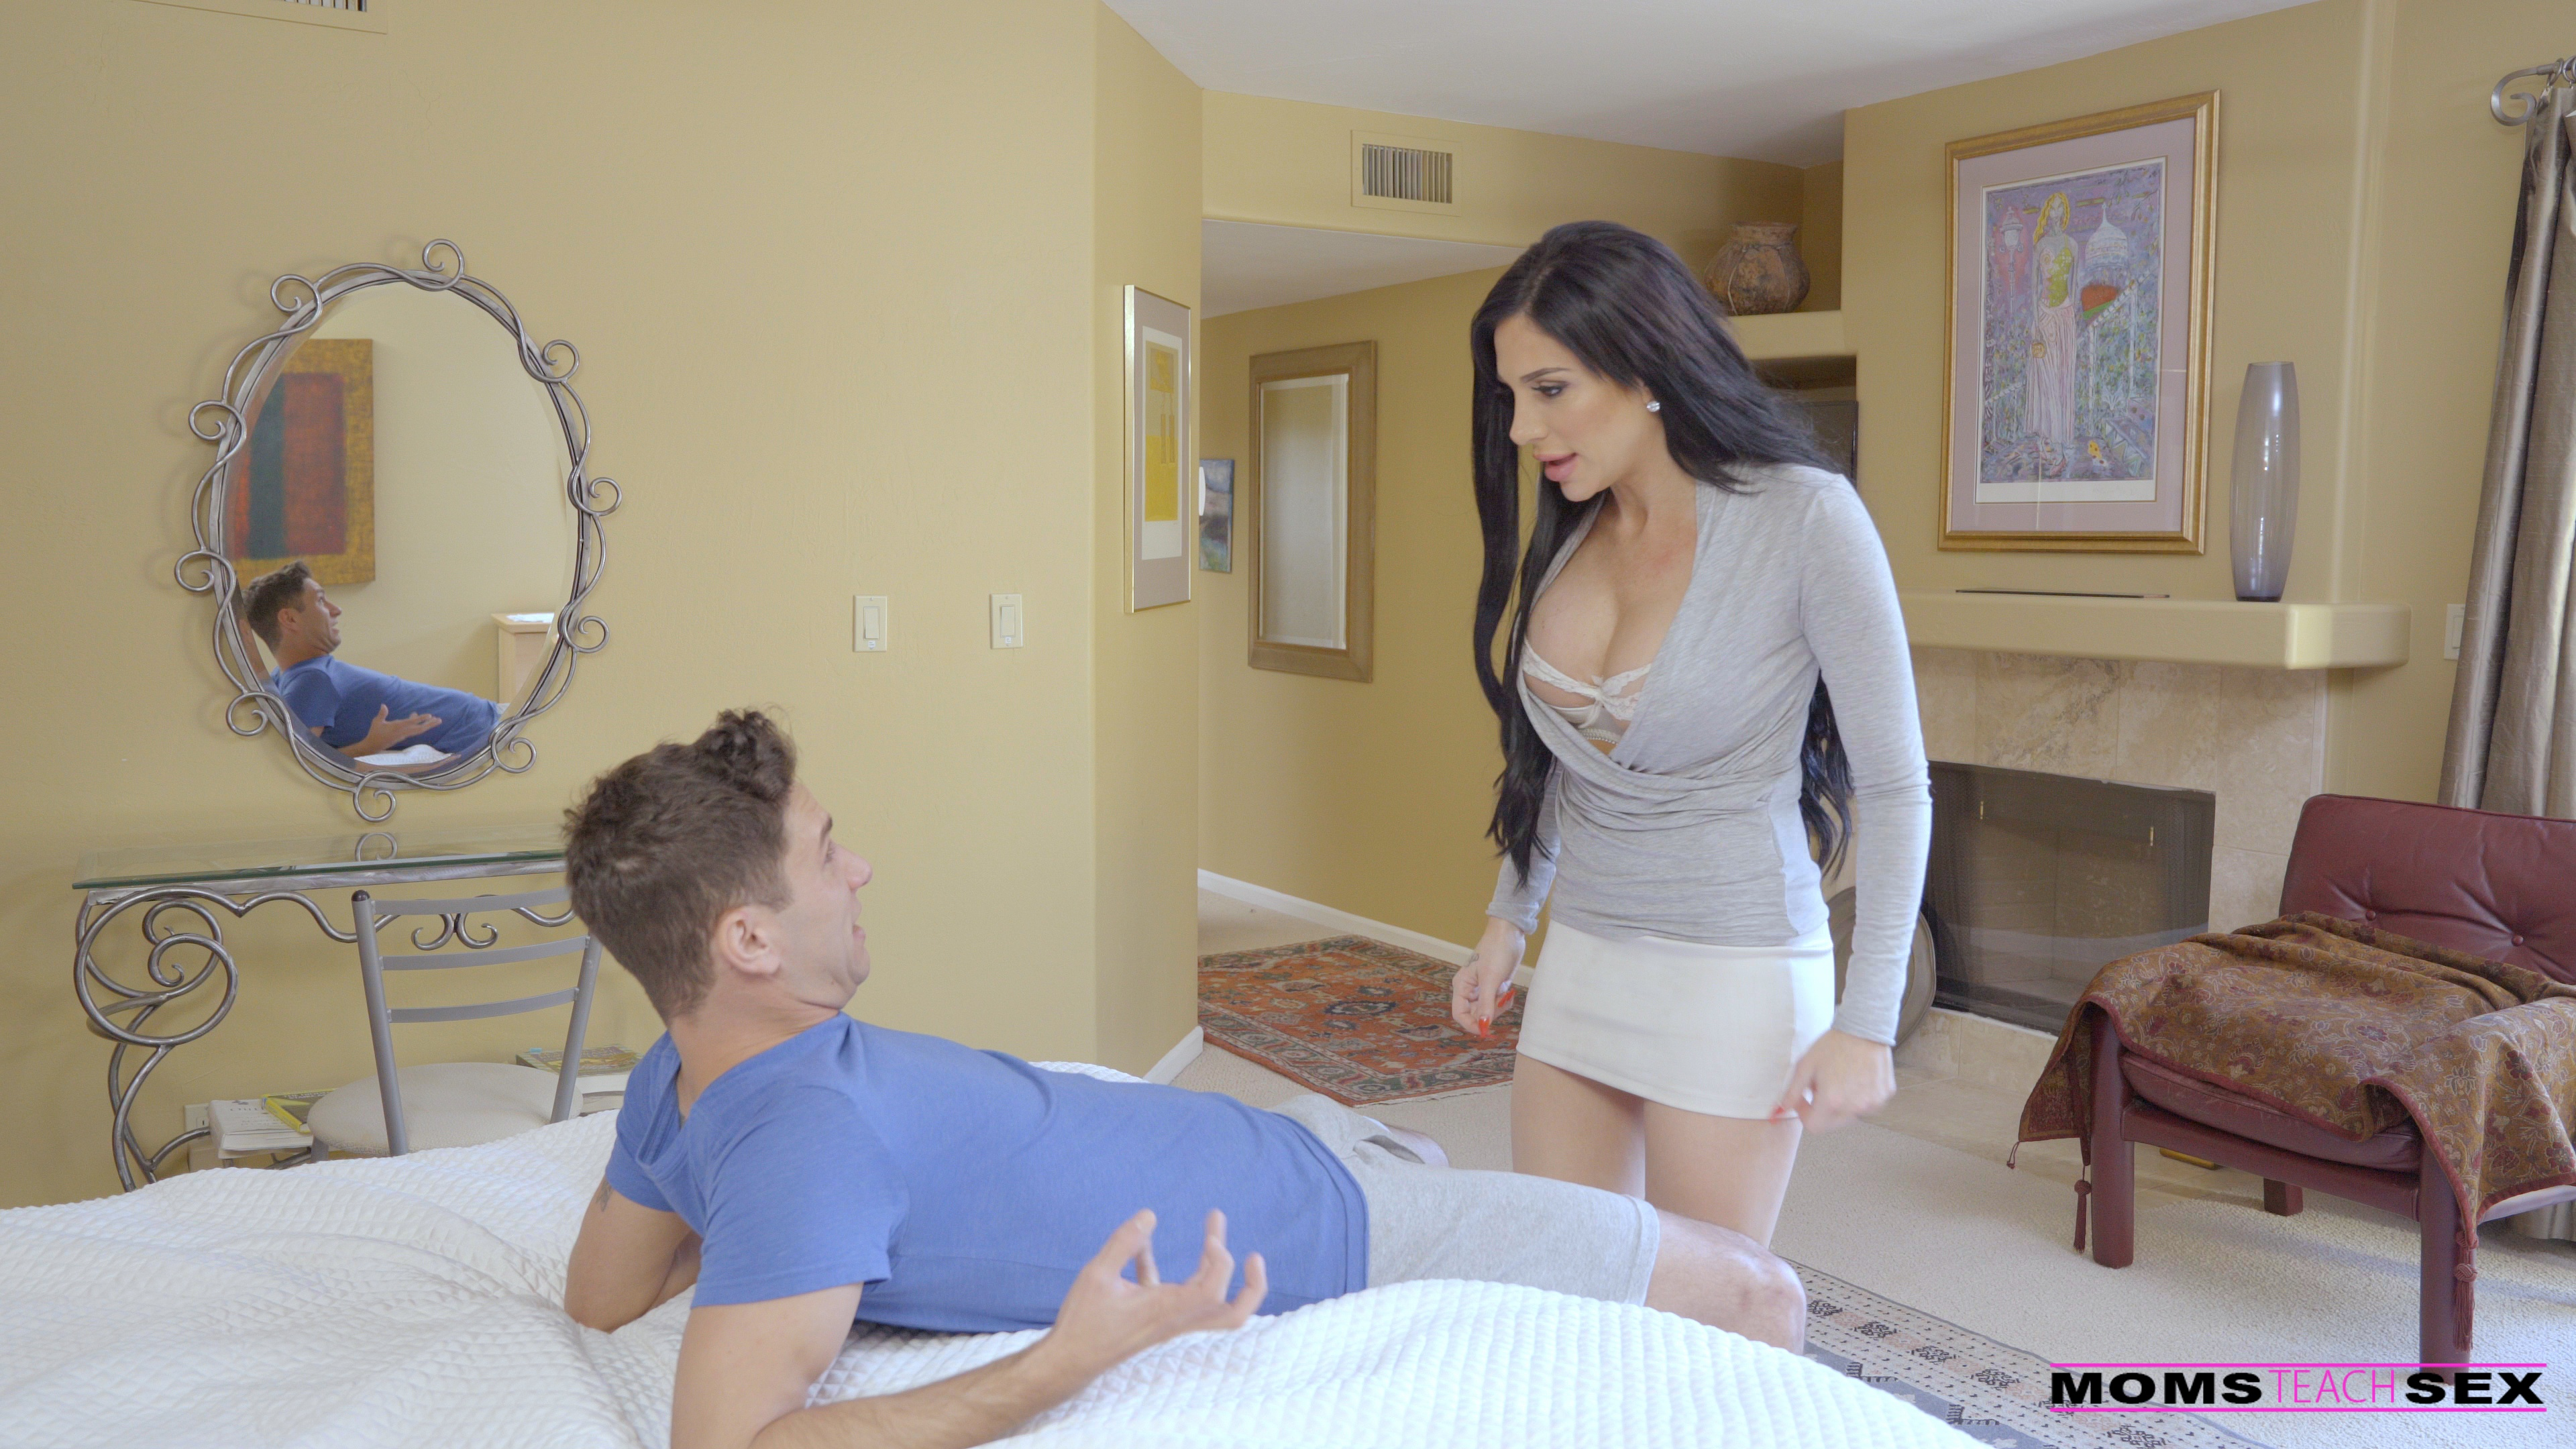 MomsTeachSex.com - Jaclyn Taylor,Sierra Nicole: Sex Lessons From Mama - S6:E4